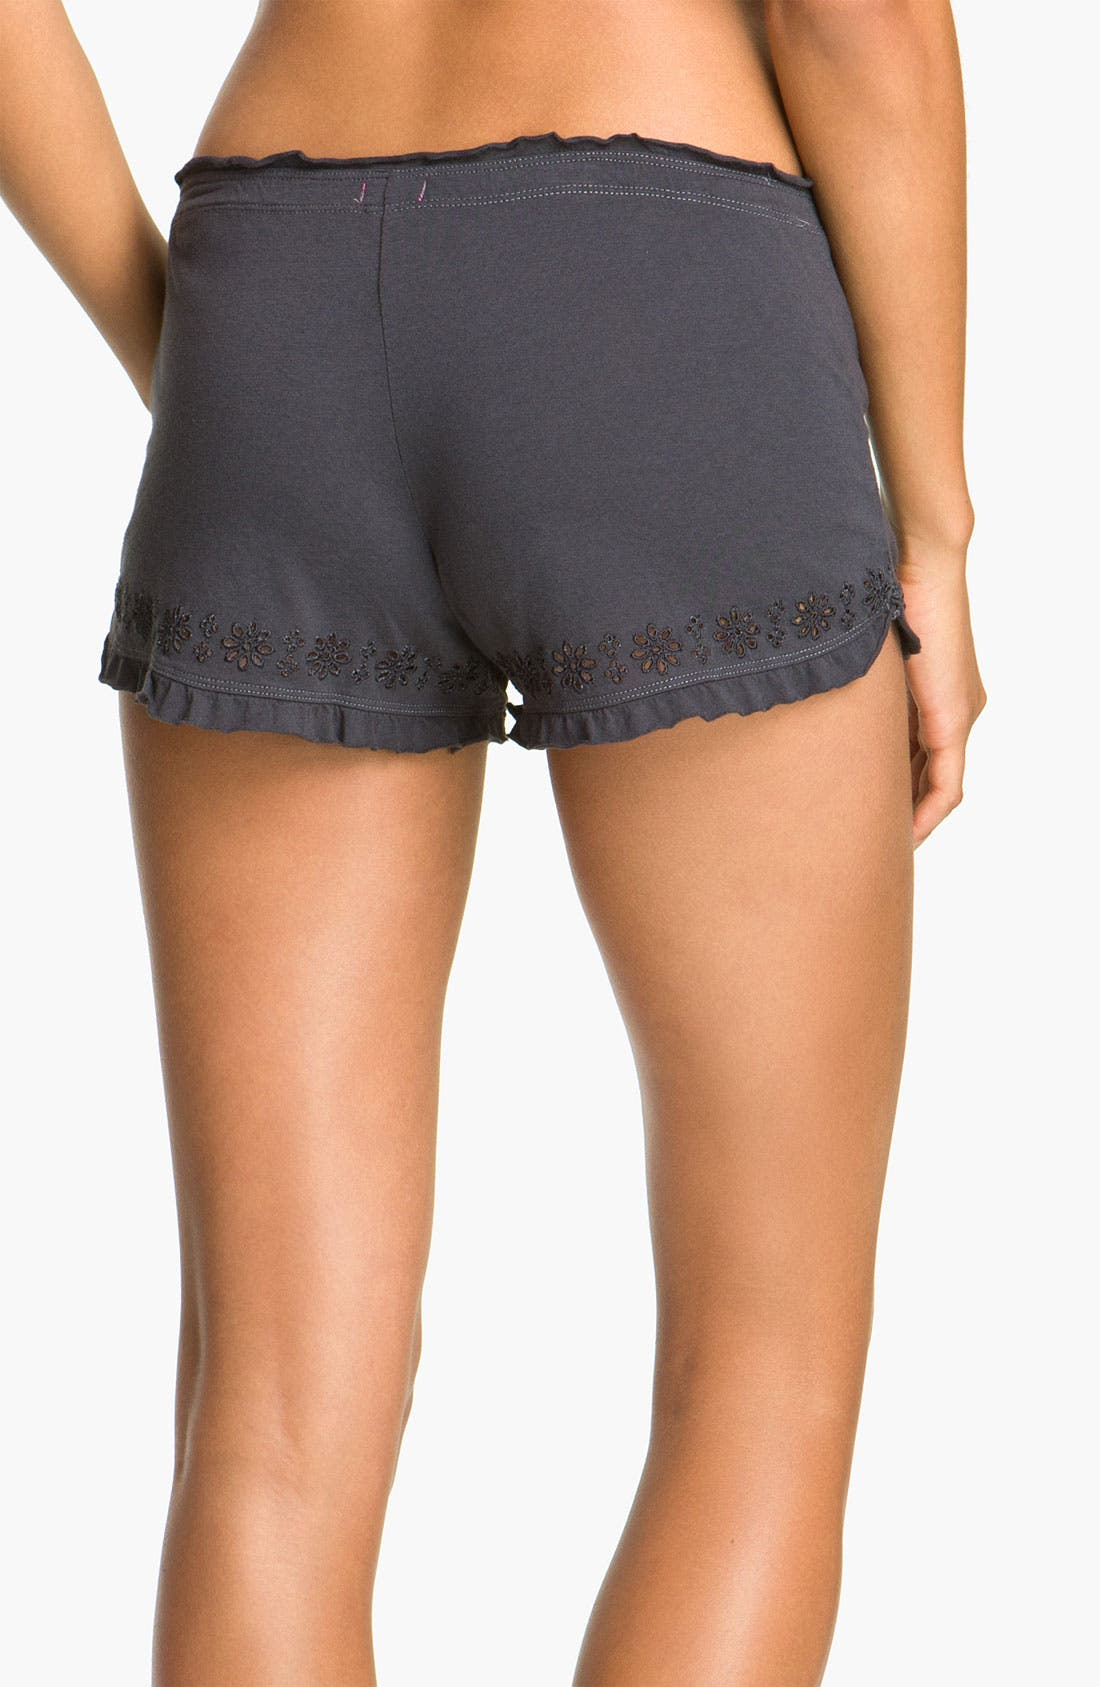 Alternate Image 2  - PJ Salvage 'Dye Cut Cutie' Sleep Shorts